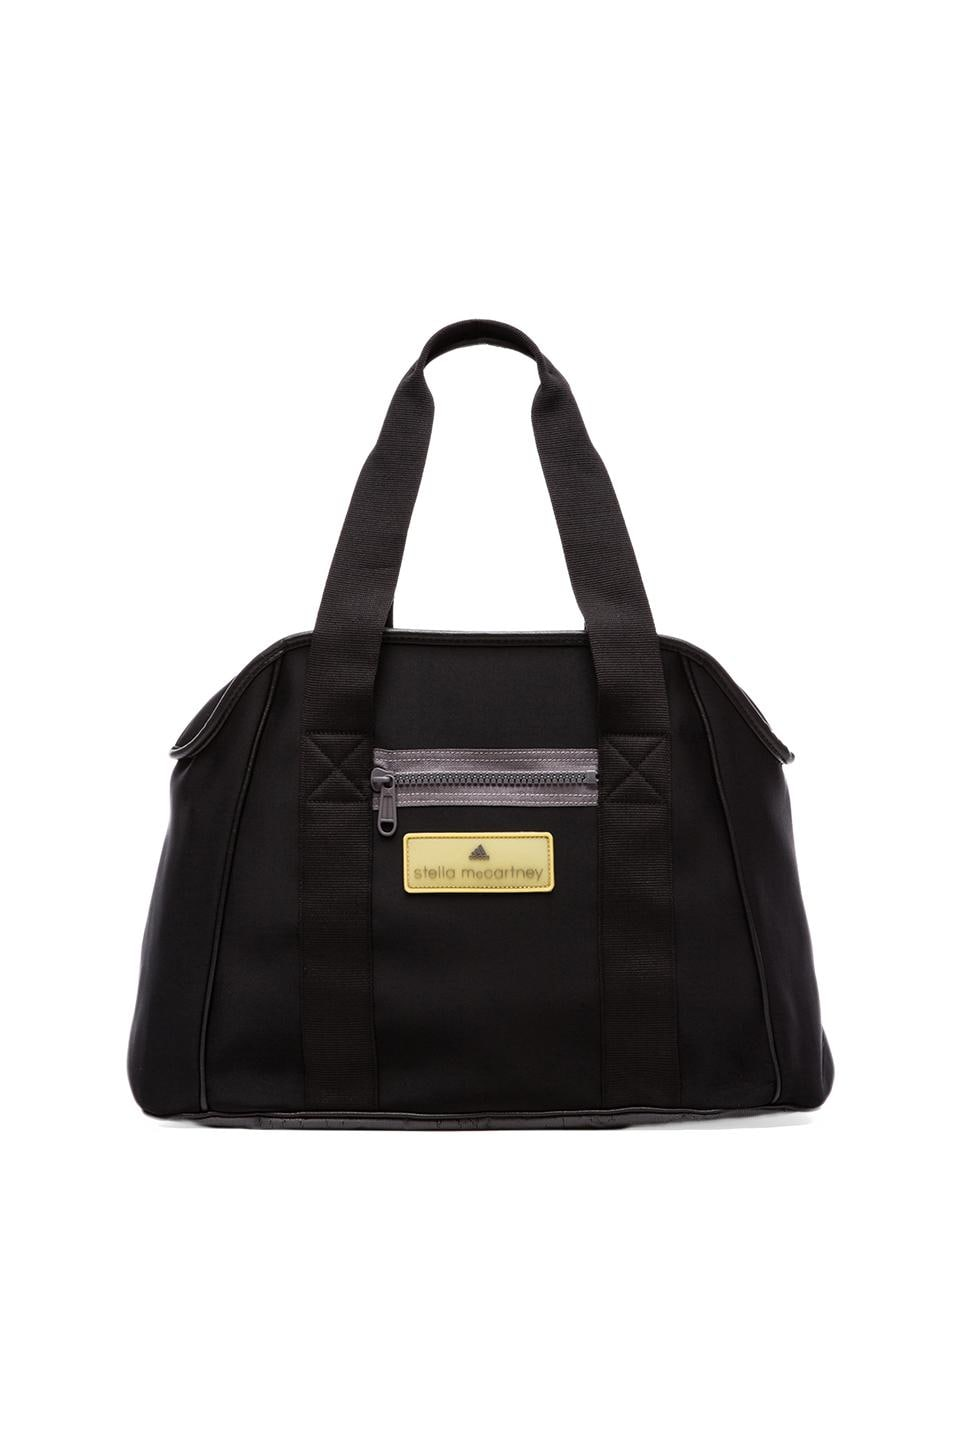 adidas by Stella McCartney Small Gym Bag in Black & Grey